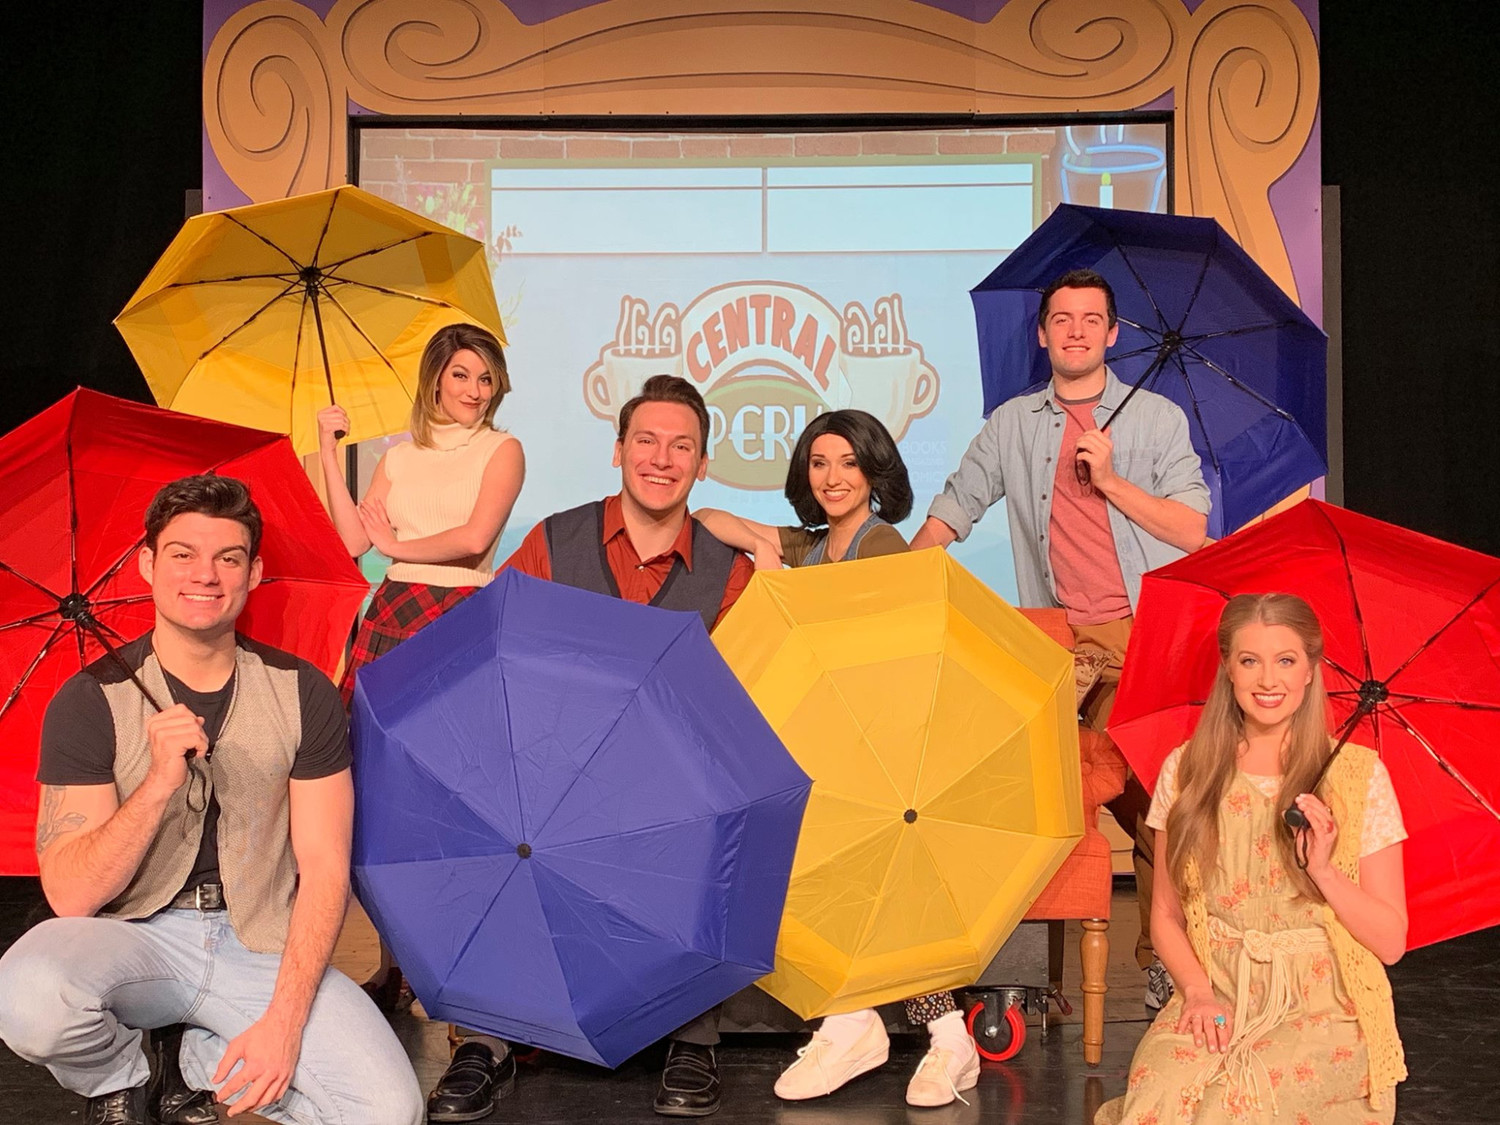 BWW Review: FRIENDS!: THE MUSICAL PARODY Is The One You Want to See with Your Millennial BFFs